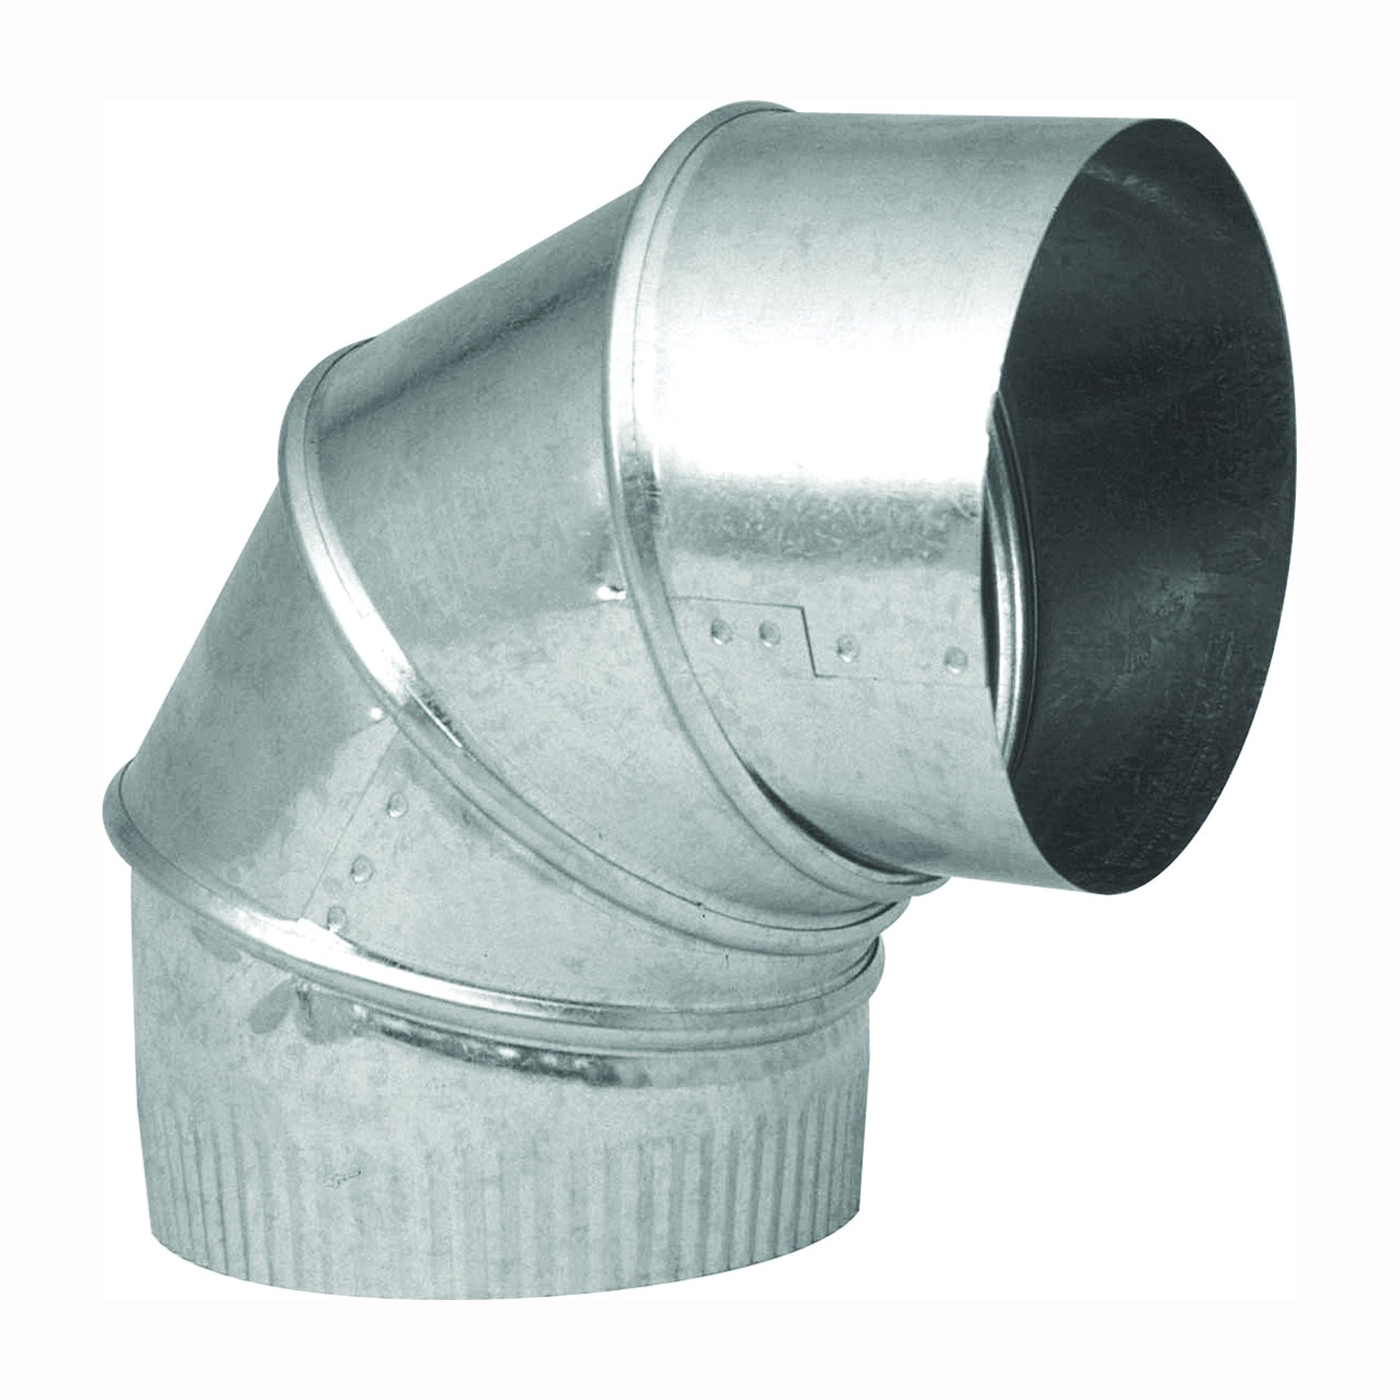 Picture of Imperial GV0281-C Stove Pipe Elbow, 3 in Connection, 28 Gauge, Galvanized Steel